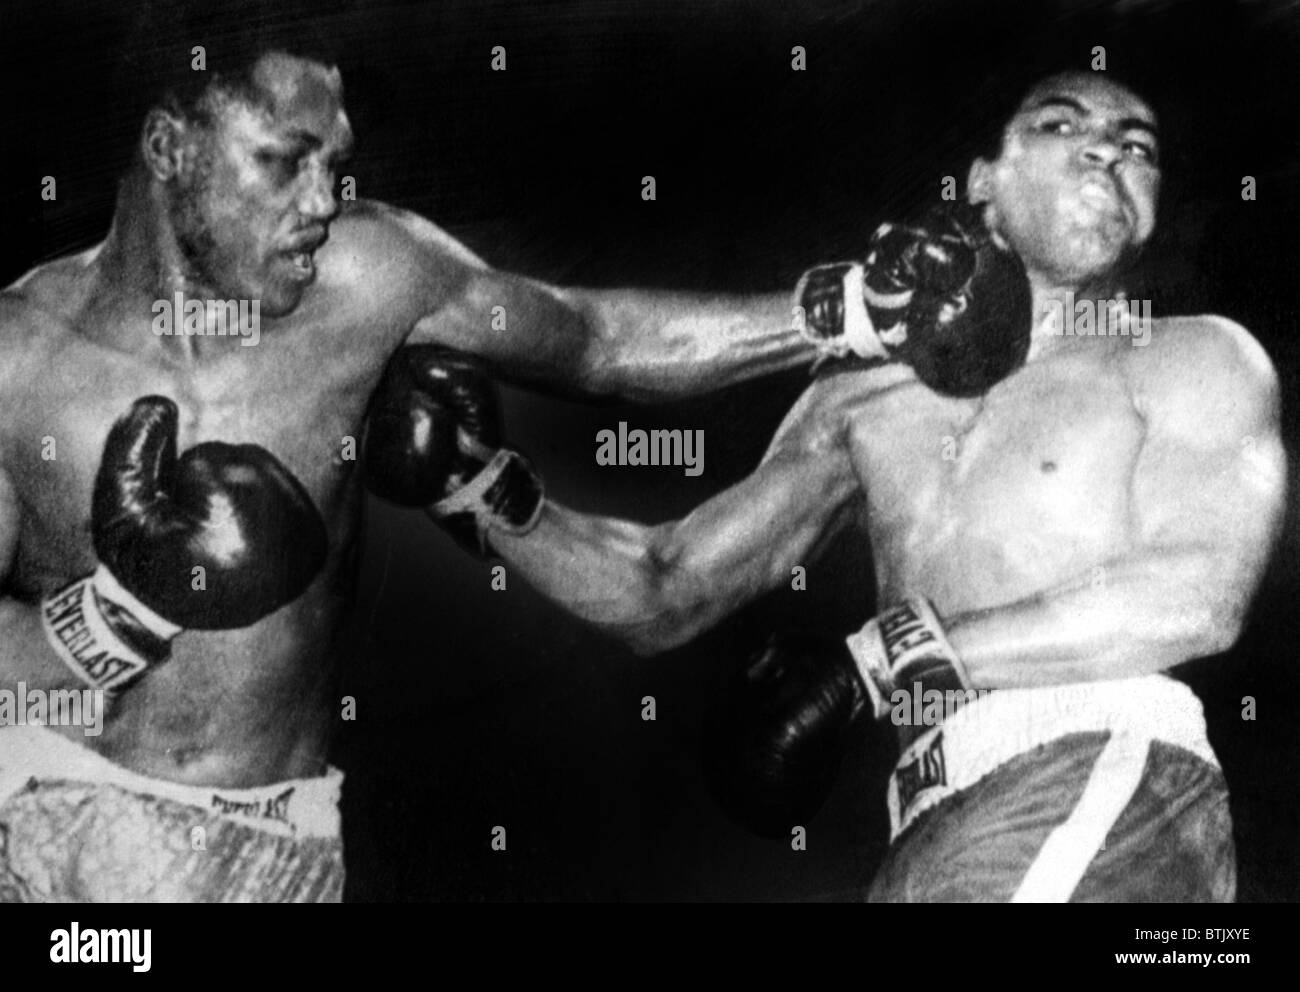 Joe Frazier vs. Muhammad Ali in their first title fight at Madison Square Garden, 1971 - Stock Image